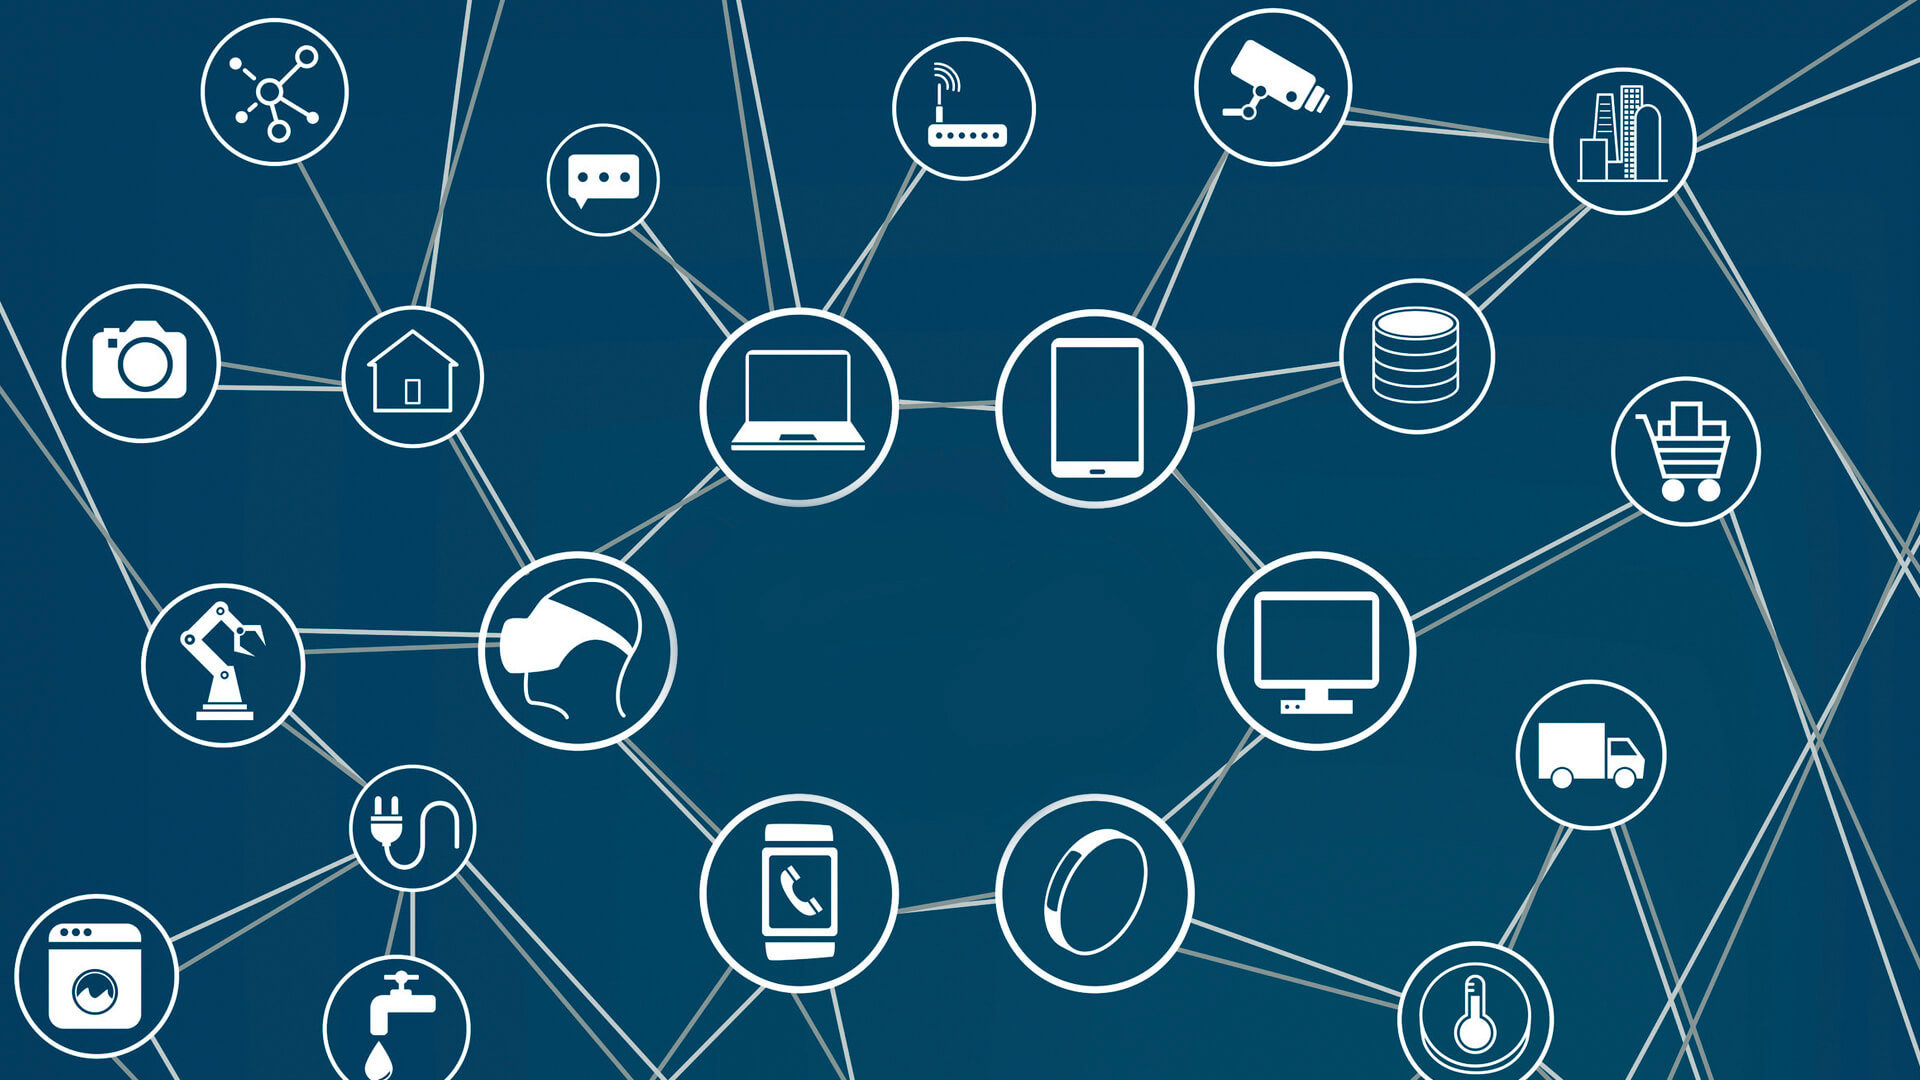 How about an enterprise open-source solution for building an IoT cloud-based software system?